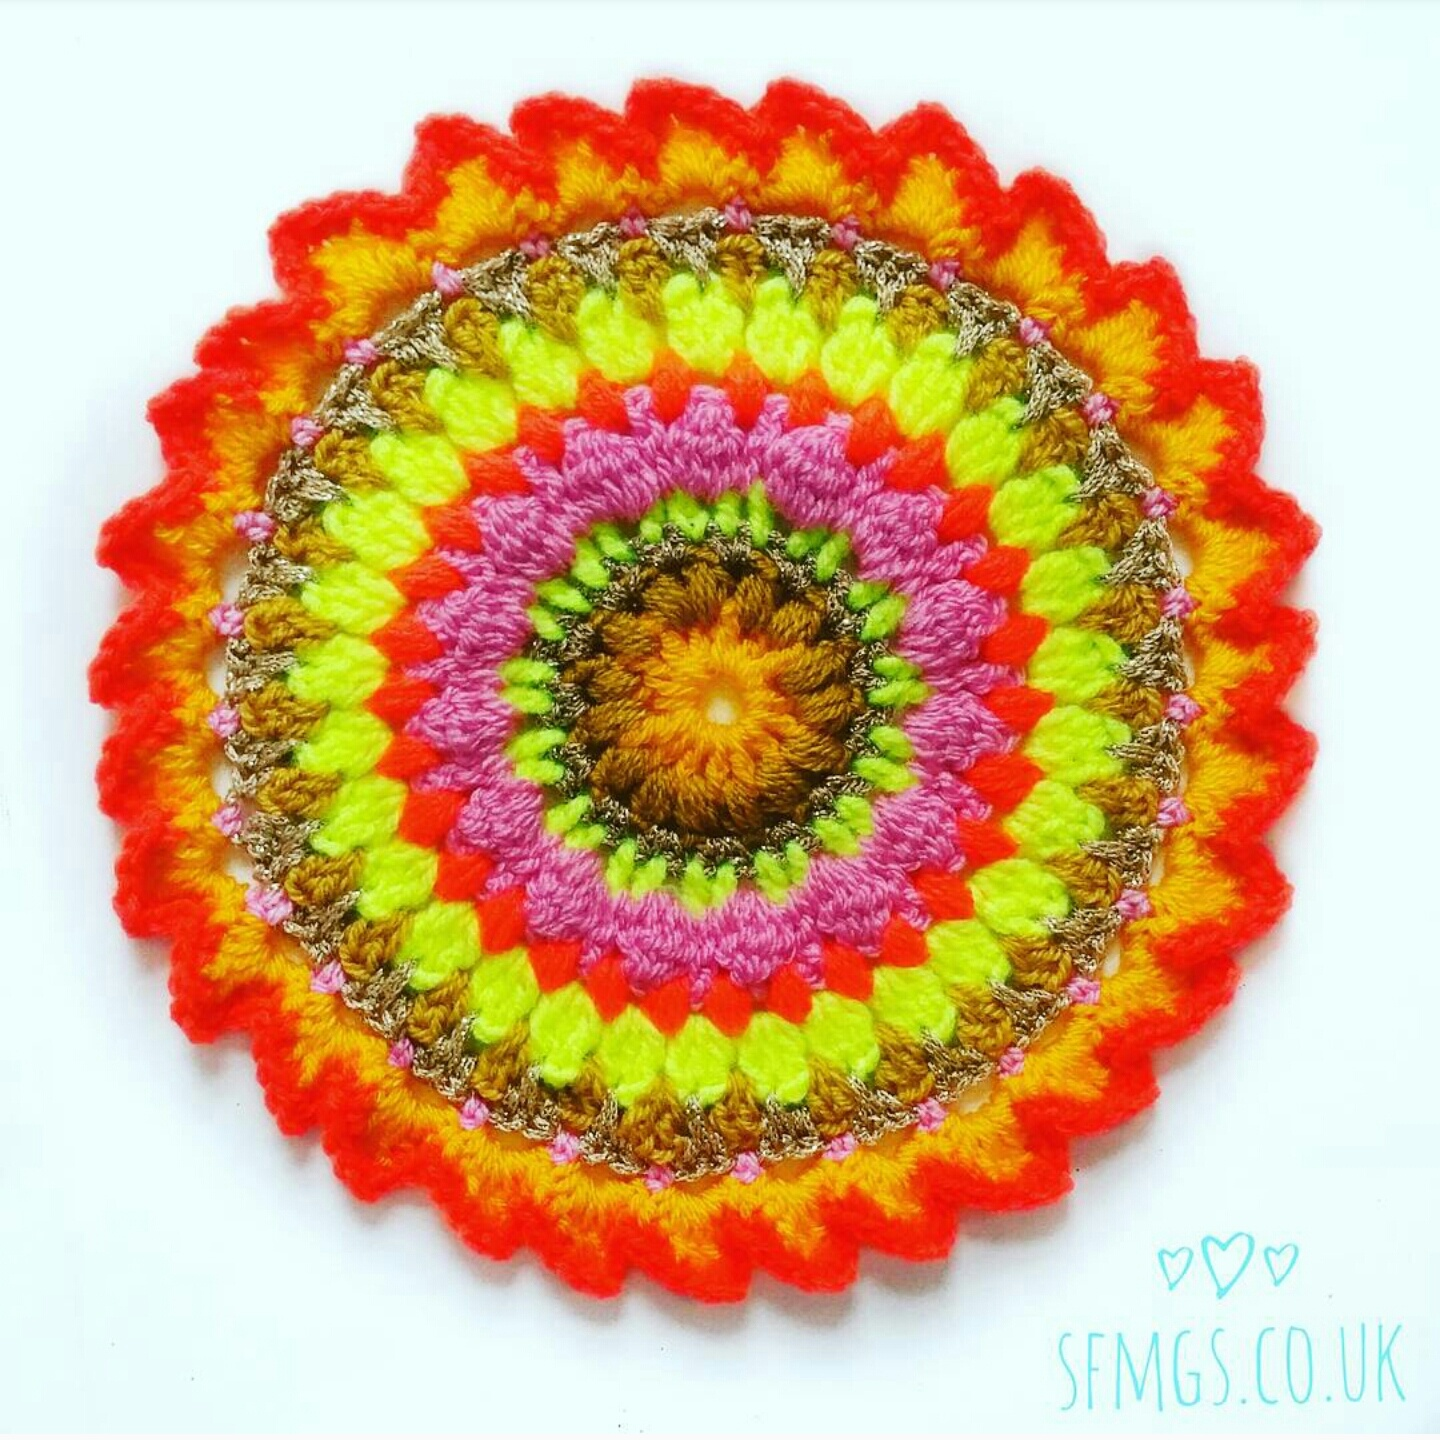 mandala crochet pattern free tutorial yarn bright boho craft creative